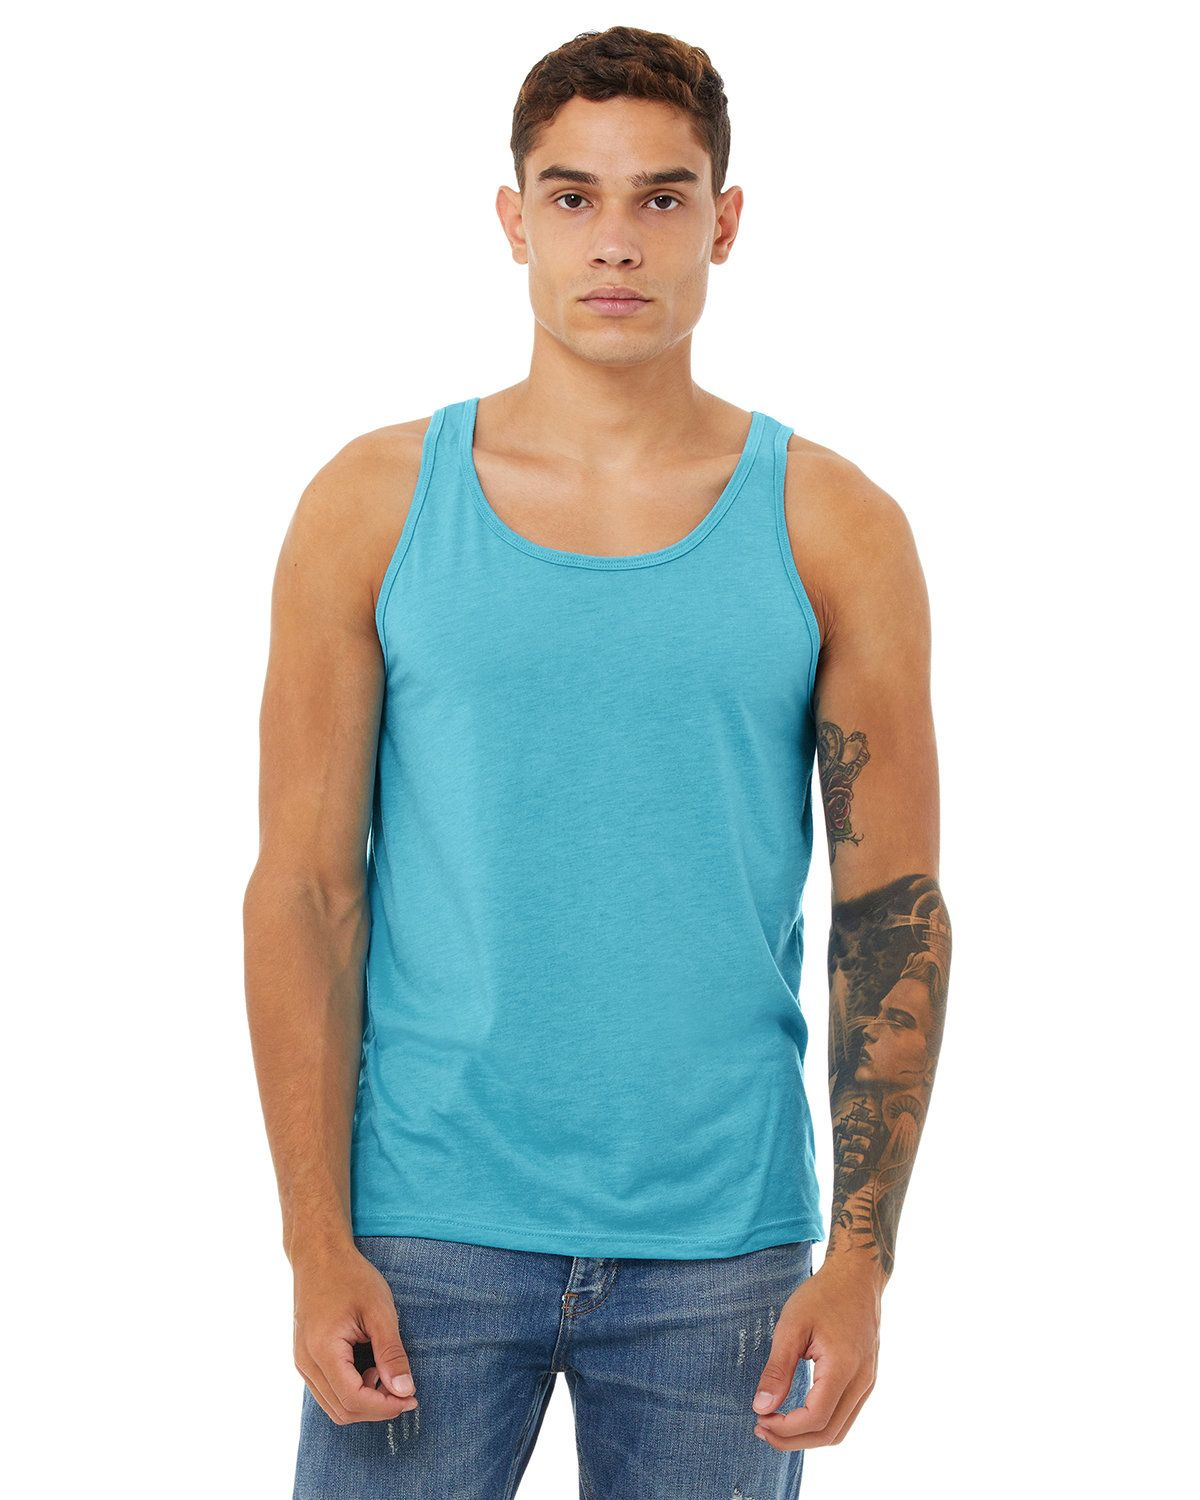 Bella + Canvas 3480 Jersey Unisex Tank - Aqua Triblend - XS from Bella + Canvas